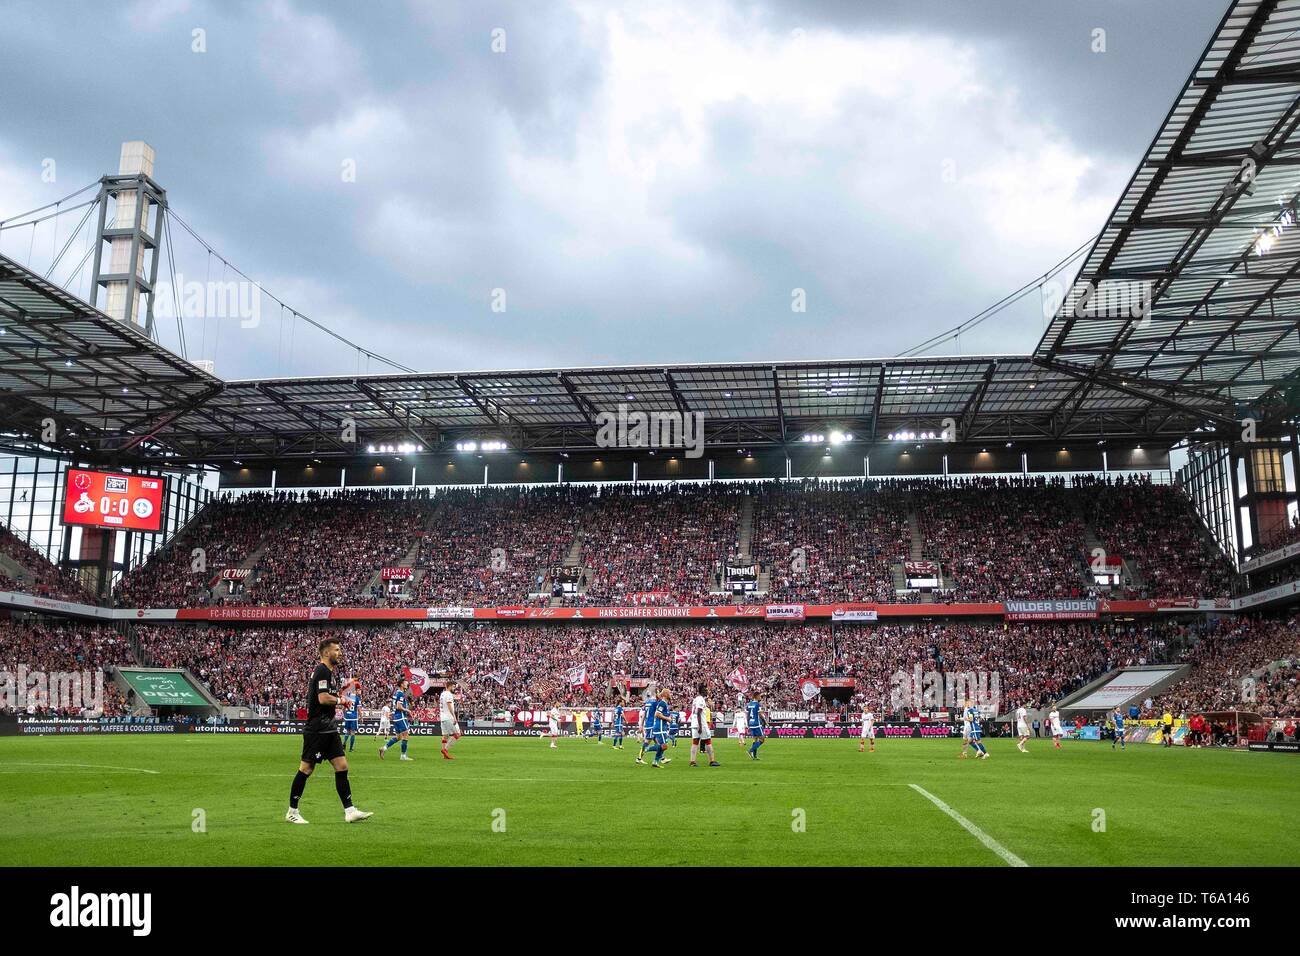 Overview Rhein-Energie-Stadion, Soccer 2. Bundesliga, 31. matchday, FC Cologne (K) - Darmstadt 98 (DA) 1: 2, on 26/04/2019 in Koeln/Germany. ## DFL regulations prohibit any use of photographs as image sequences and/or quasi-video ## ¬ | usage worldwide - Stock Image